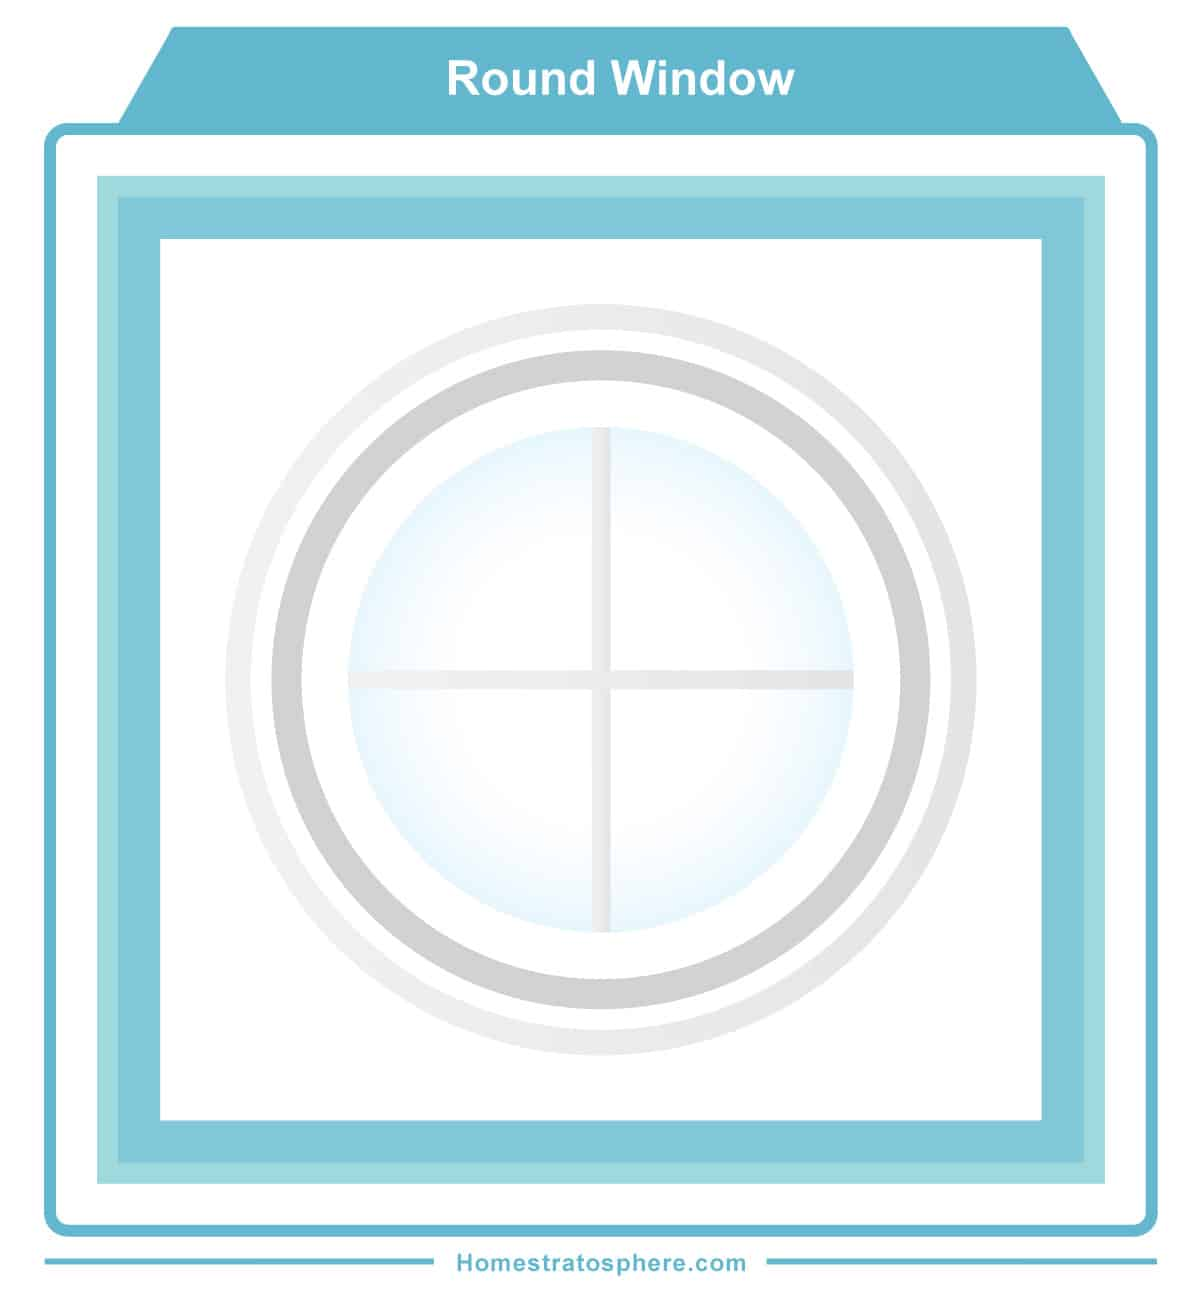 Round window diagram example